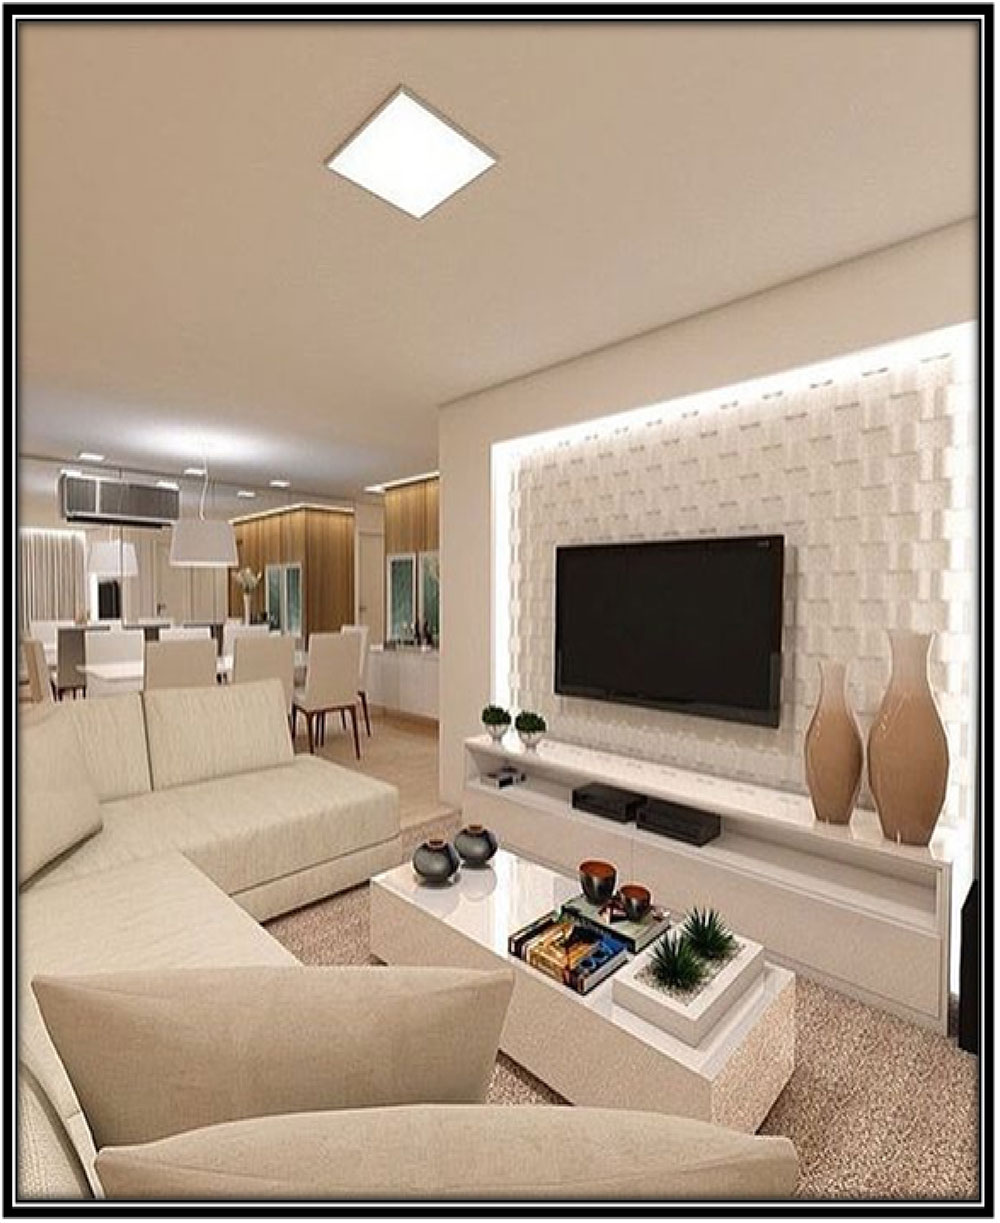 For a luxurious TV corner - Home decor ideas